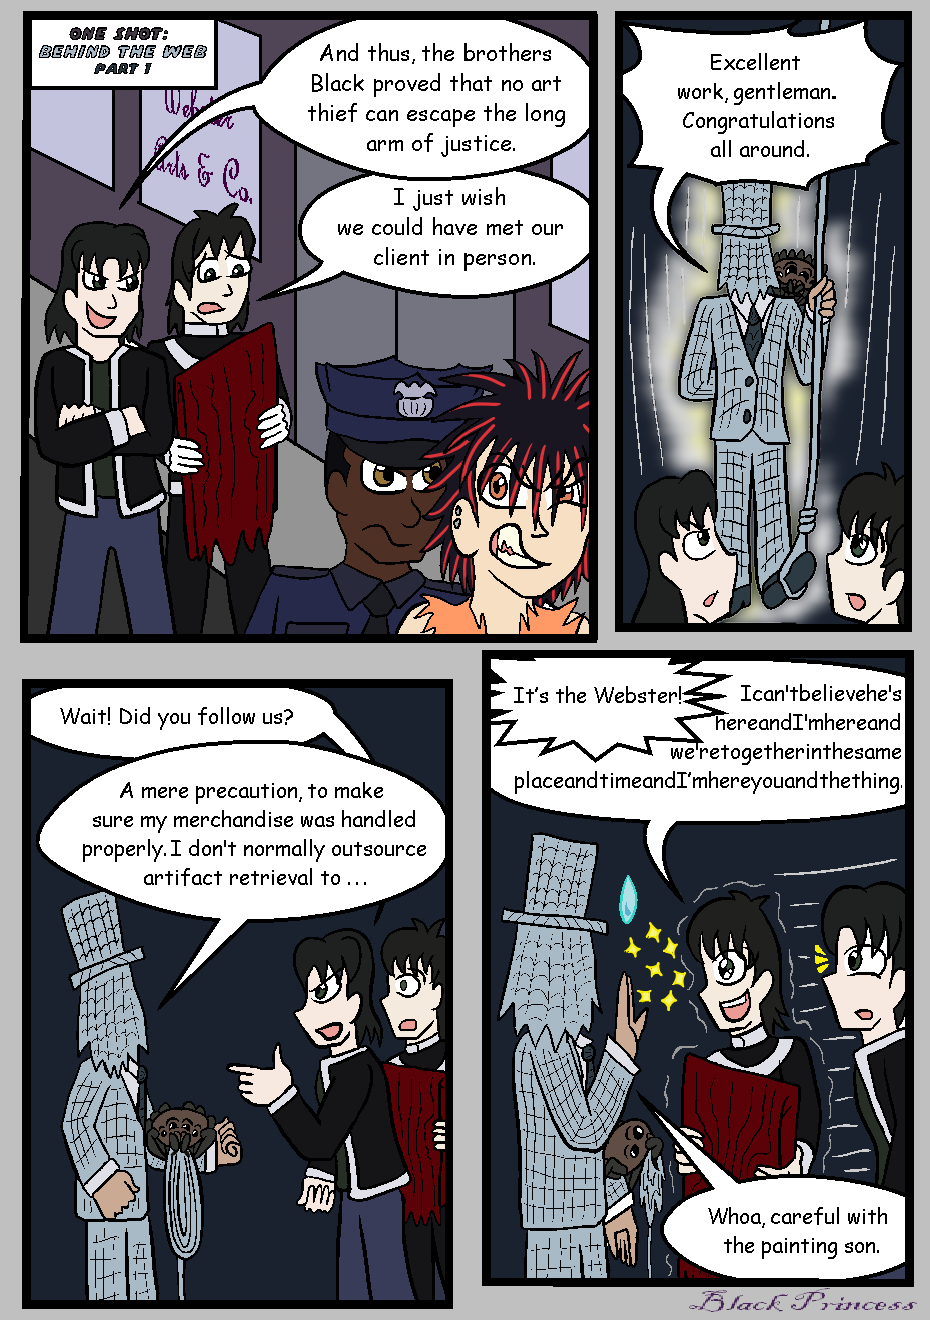 Filer: Behind the Web, Page 1